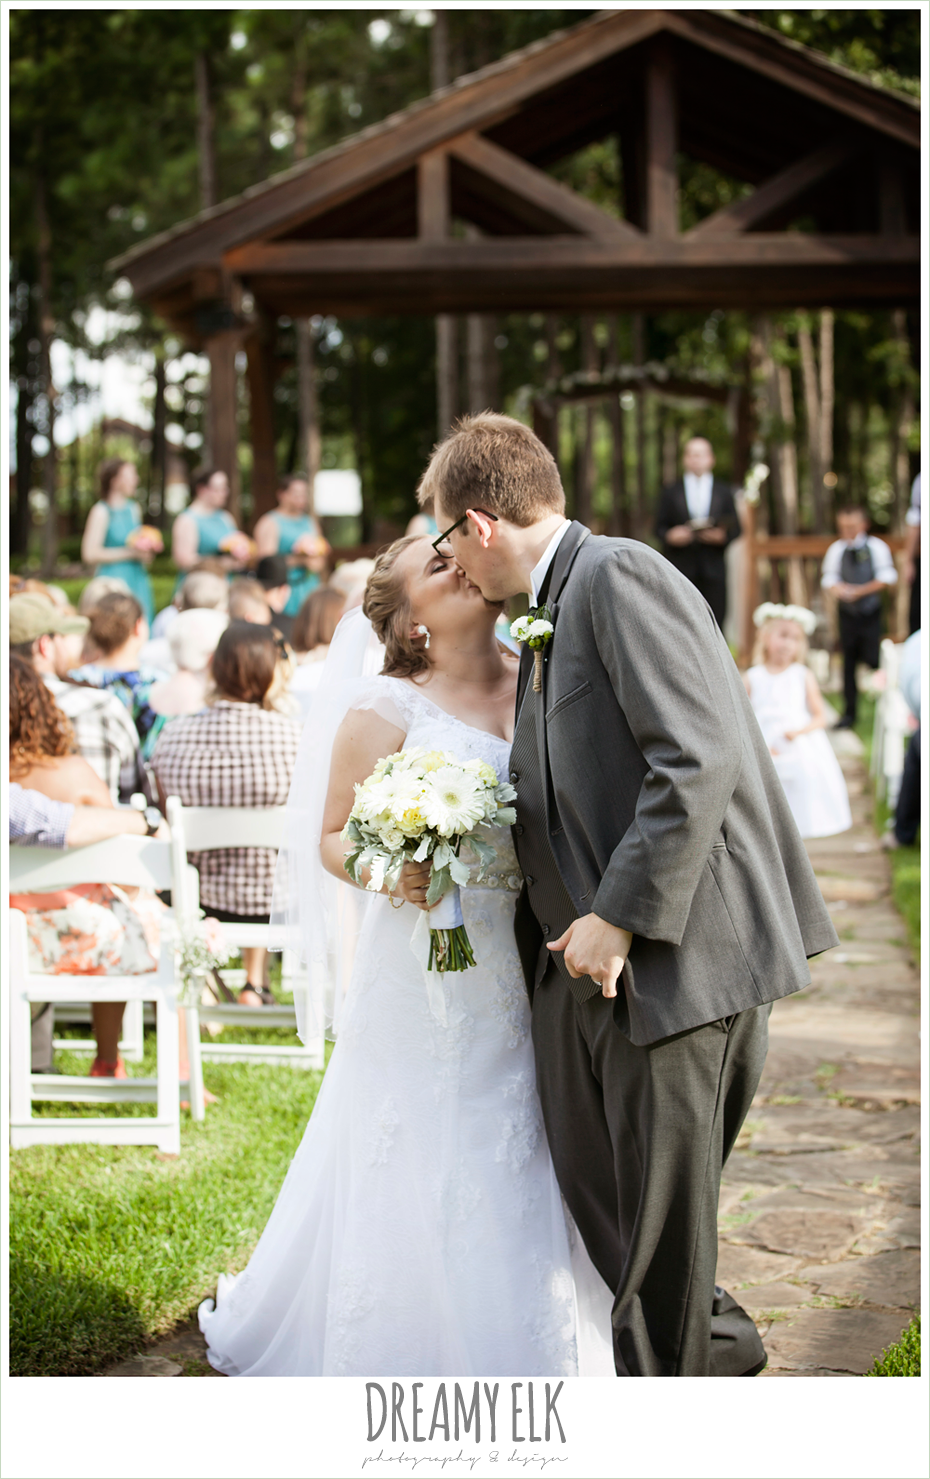 bride and groom kissing during the ceremony, amber springs summer wedding photo {dreamy elk photography and design}